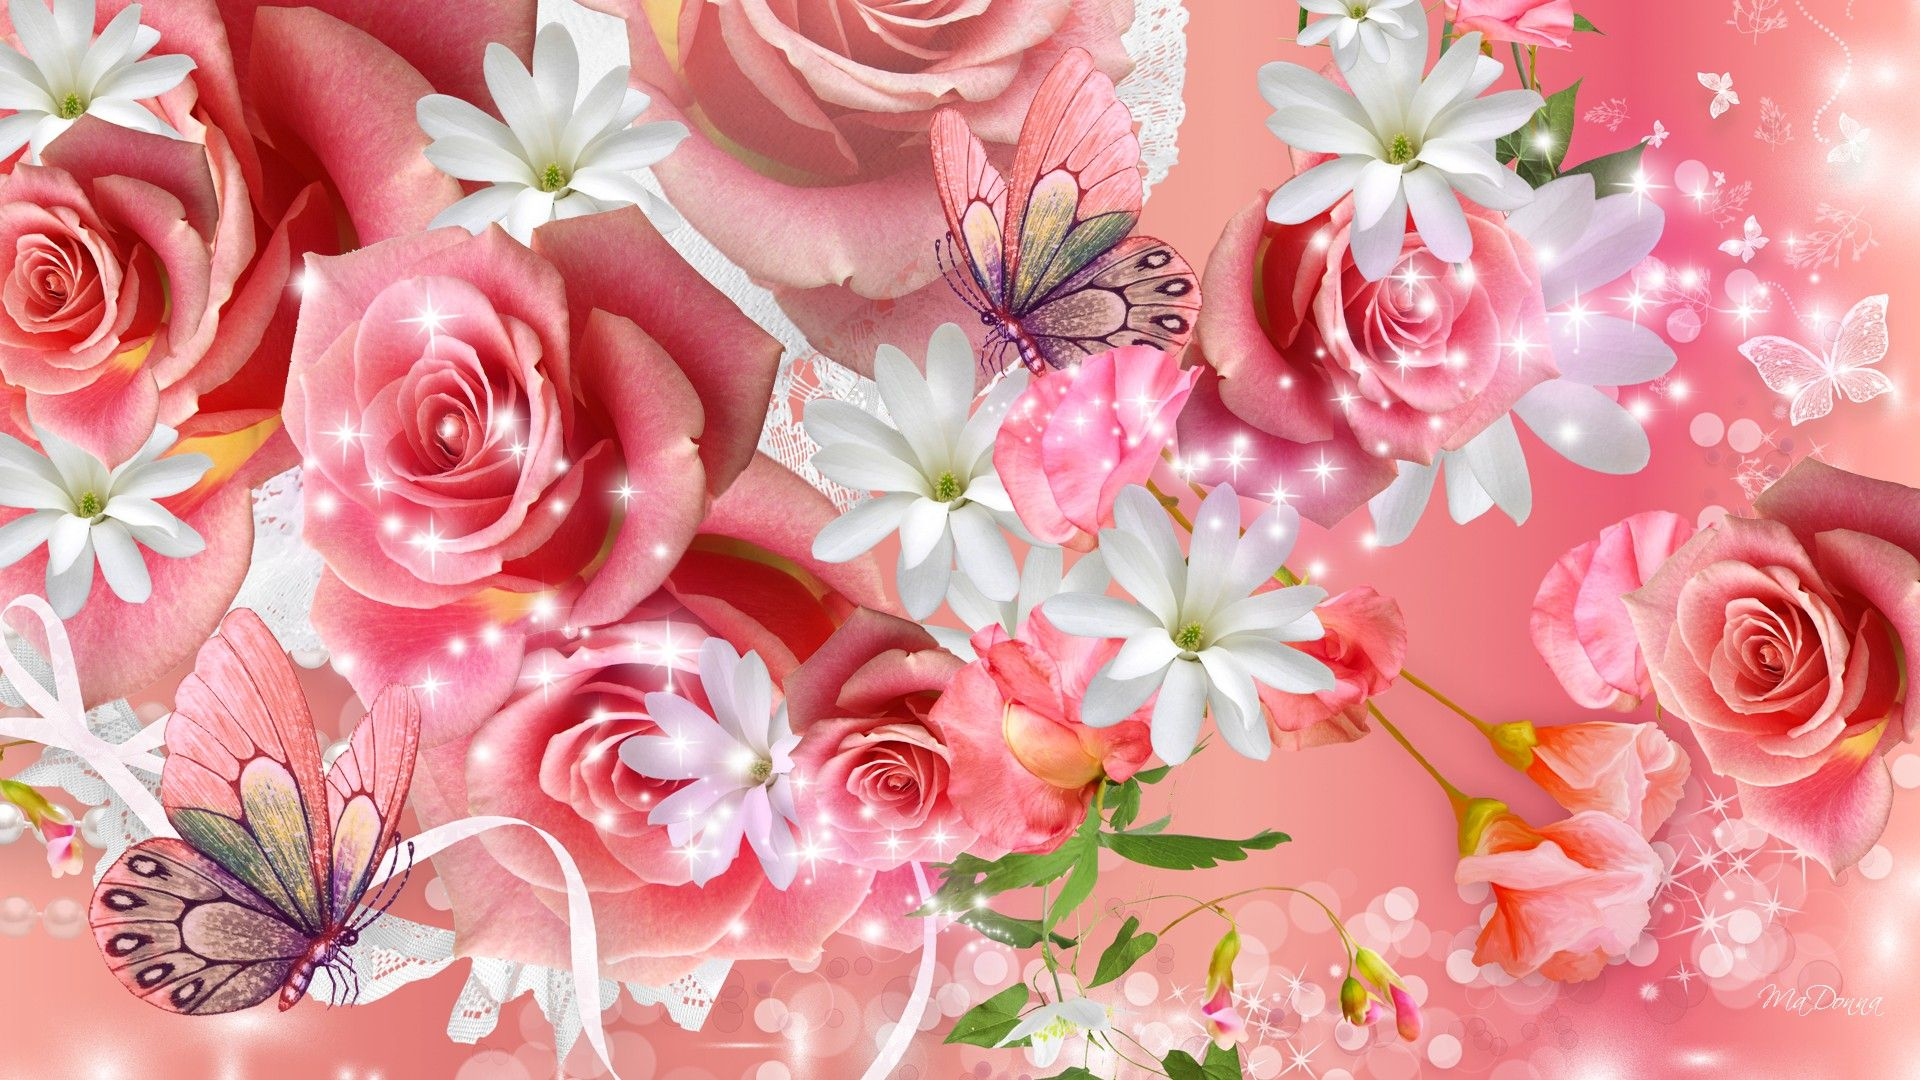 Pink Rose Butterfly Butterfly With Rose Flower Wallpaper